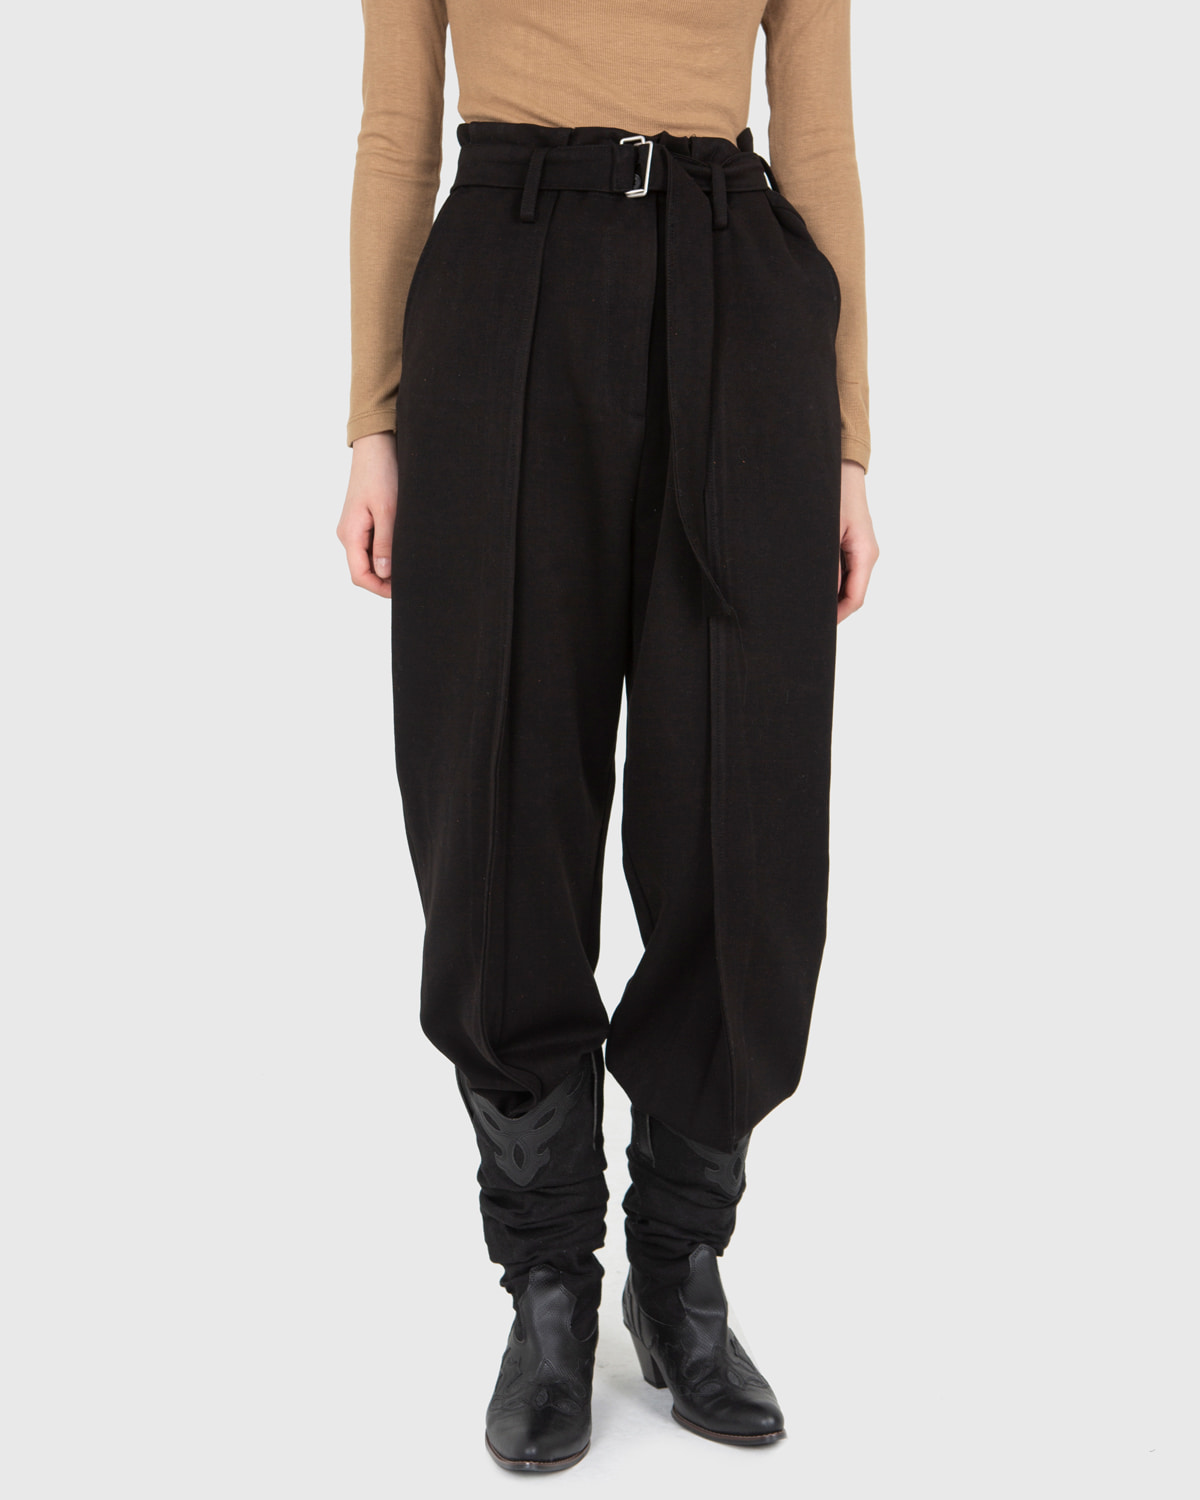 raucohouse-CASUAL BELTED WIDE PANTS - RAUCO HOUSE♡韓國男裝褲子